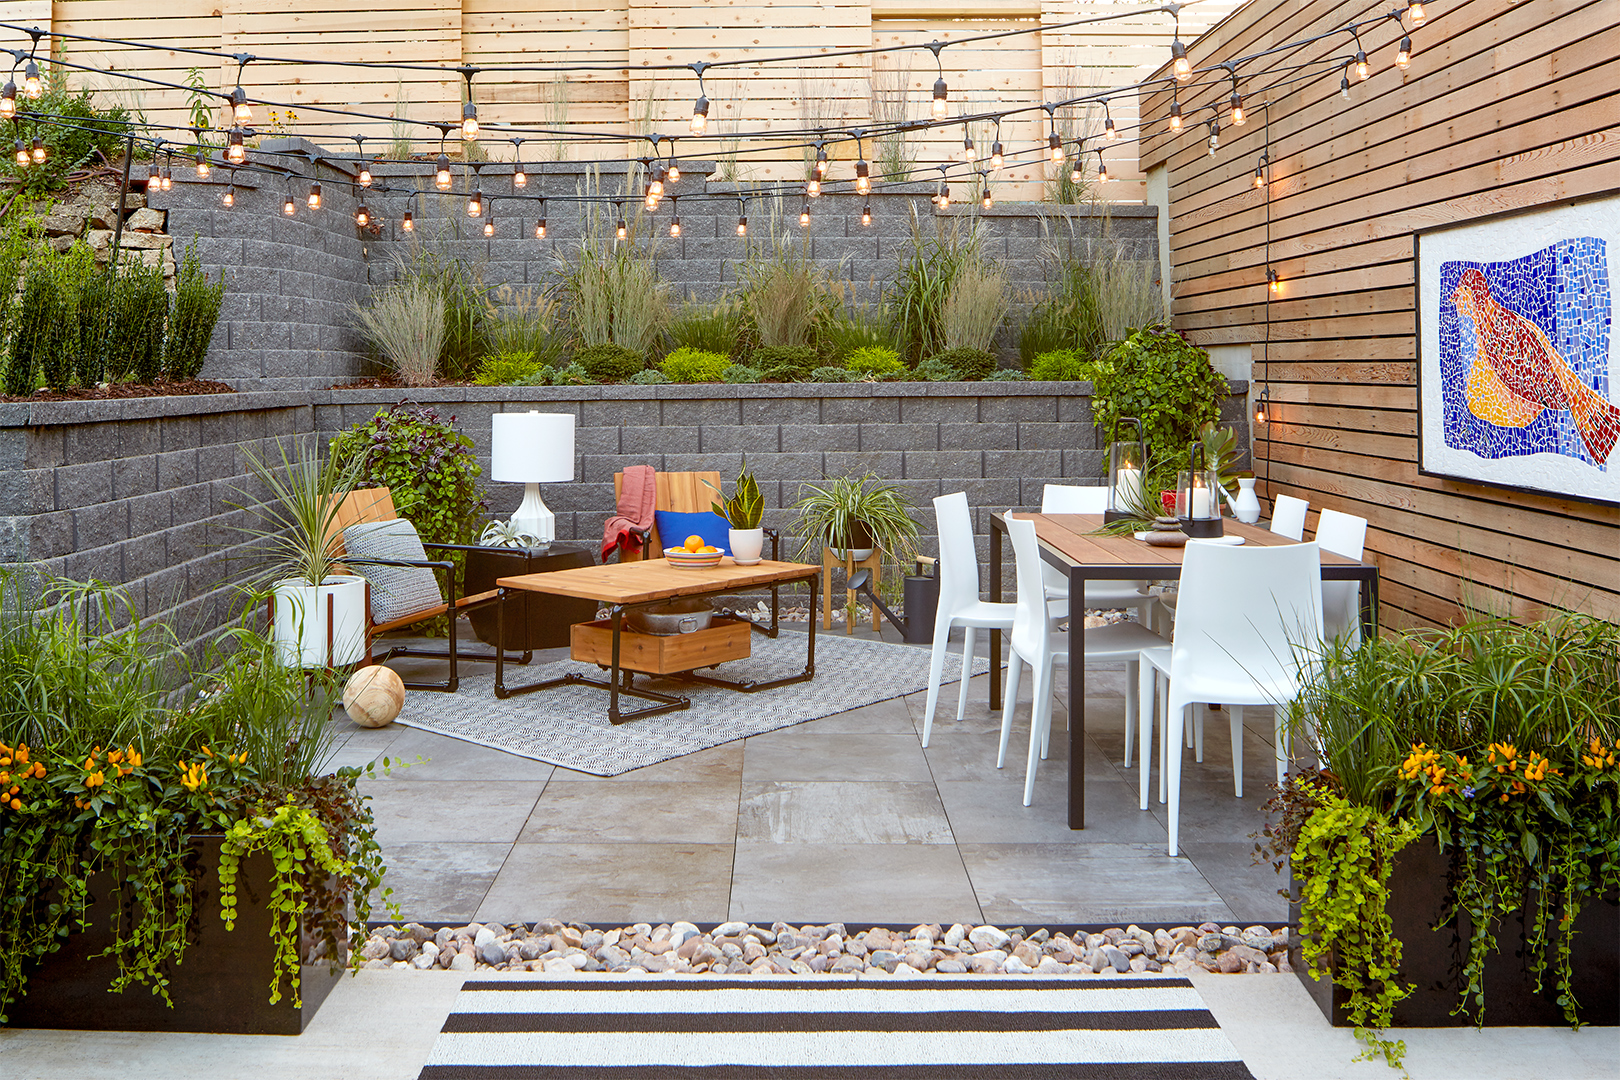 How To Install Poles To Hang Outdoor String Lights In Your Backyard Better Homes Gardens